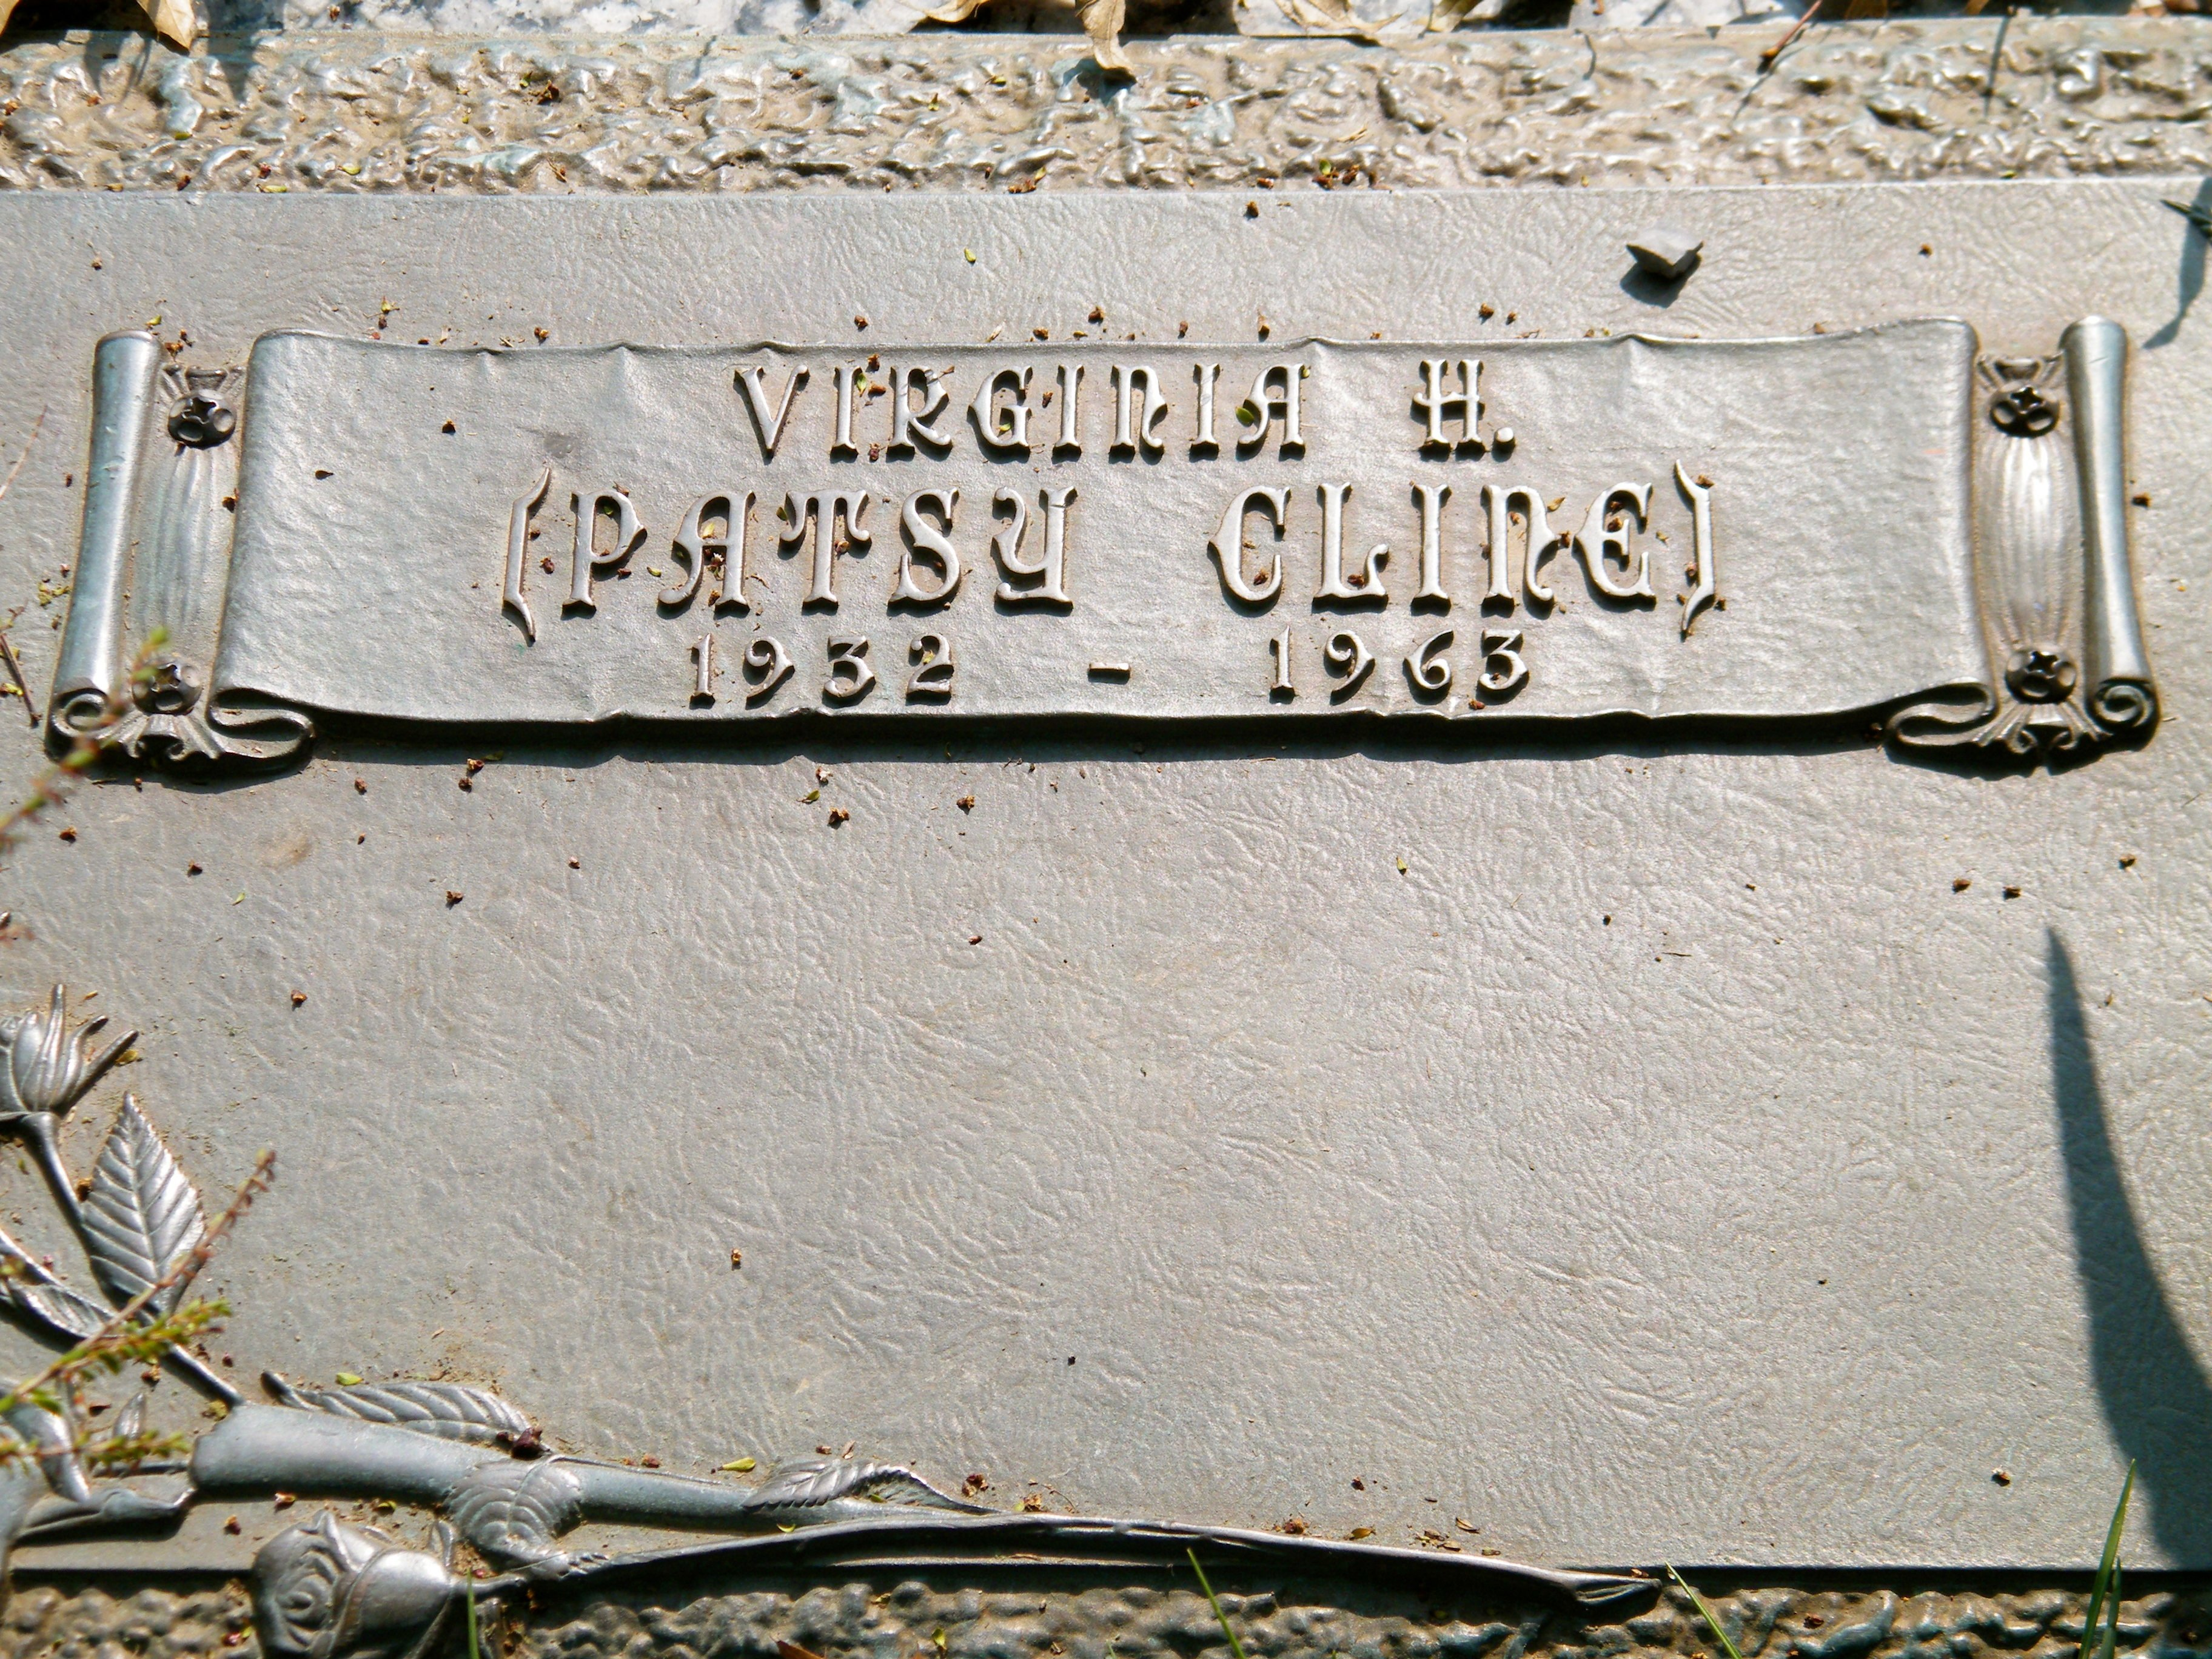 Grave of Patsy Cline - Winchester, Virginia | Source: Wikimedia Commons